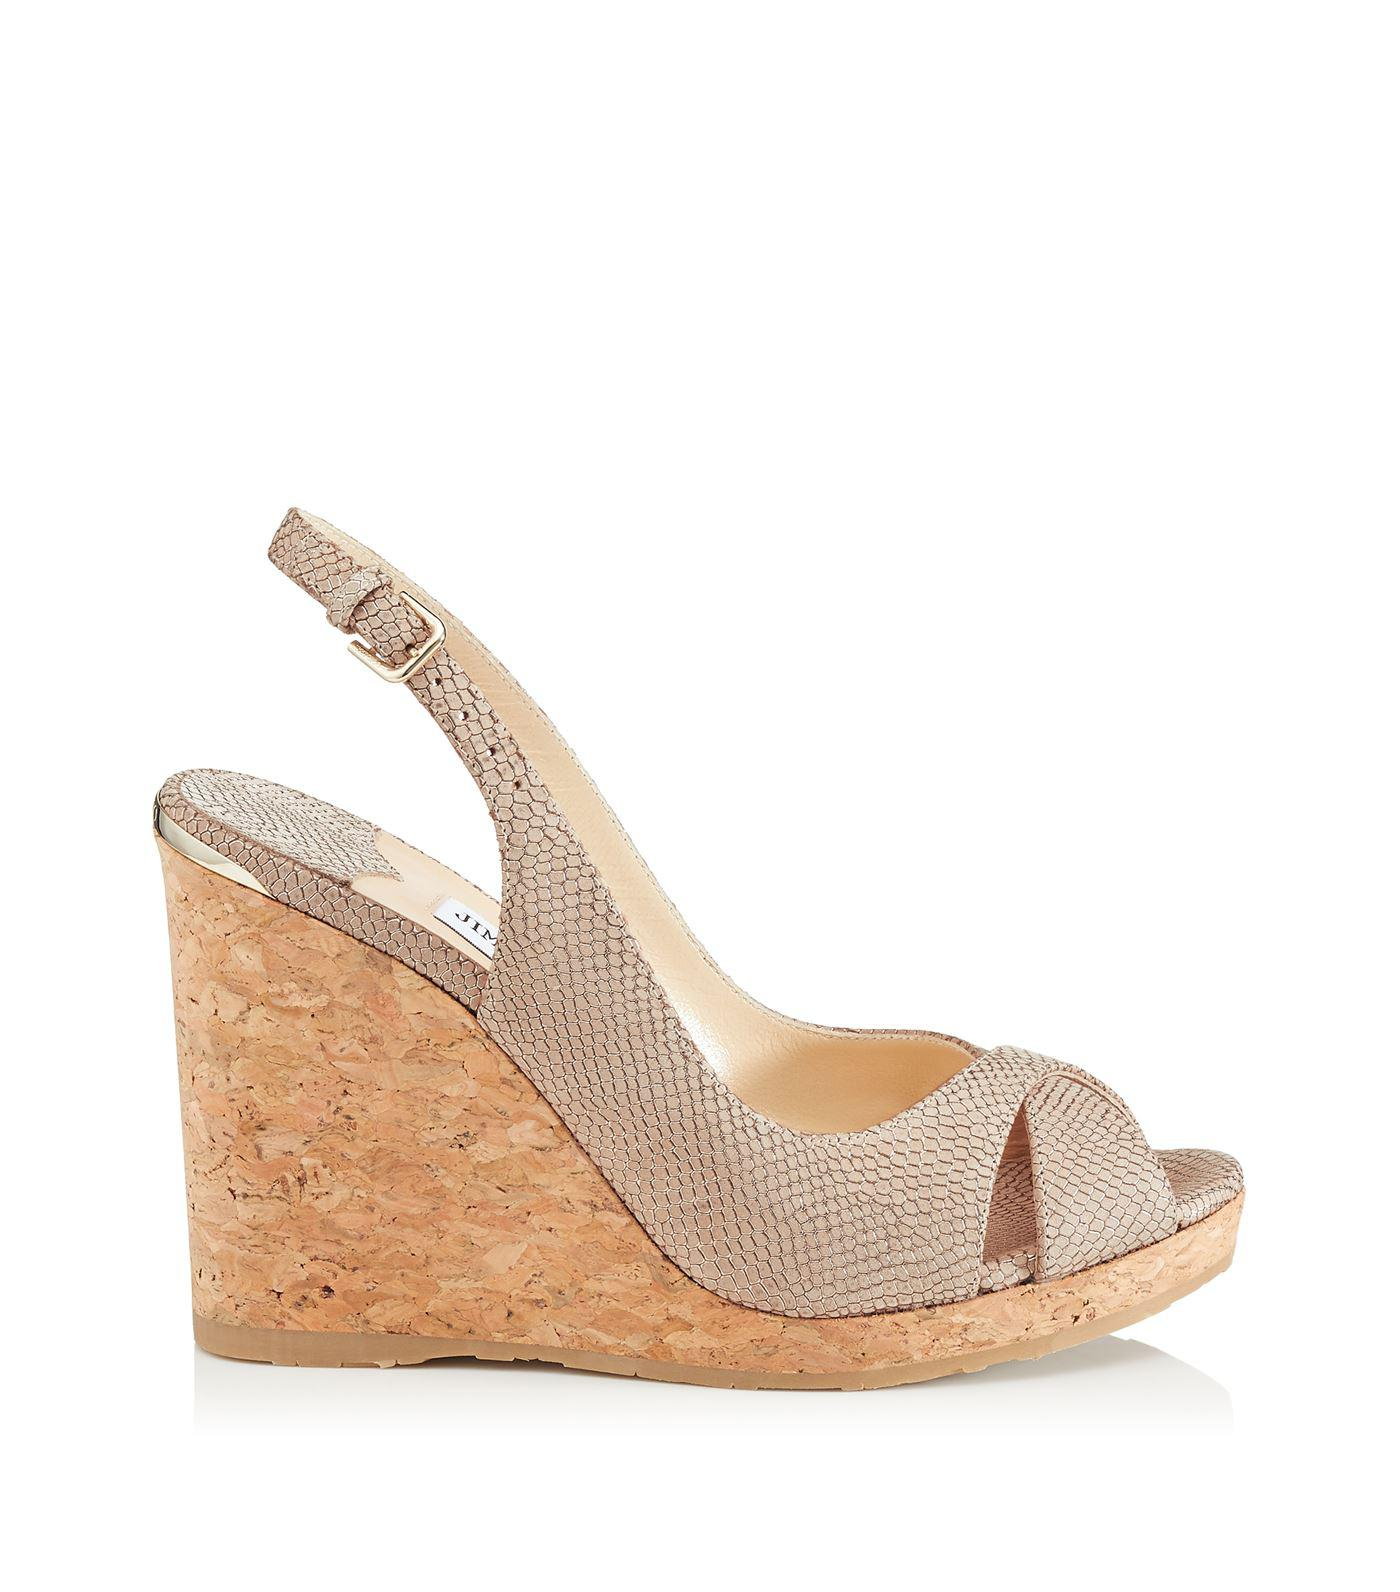 d1ffe9d56055 Lyst - Jimmy Choo Amely 105 Leather Slingback Wedge Sandals in Natural